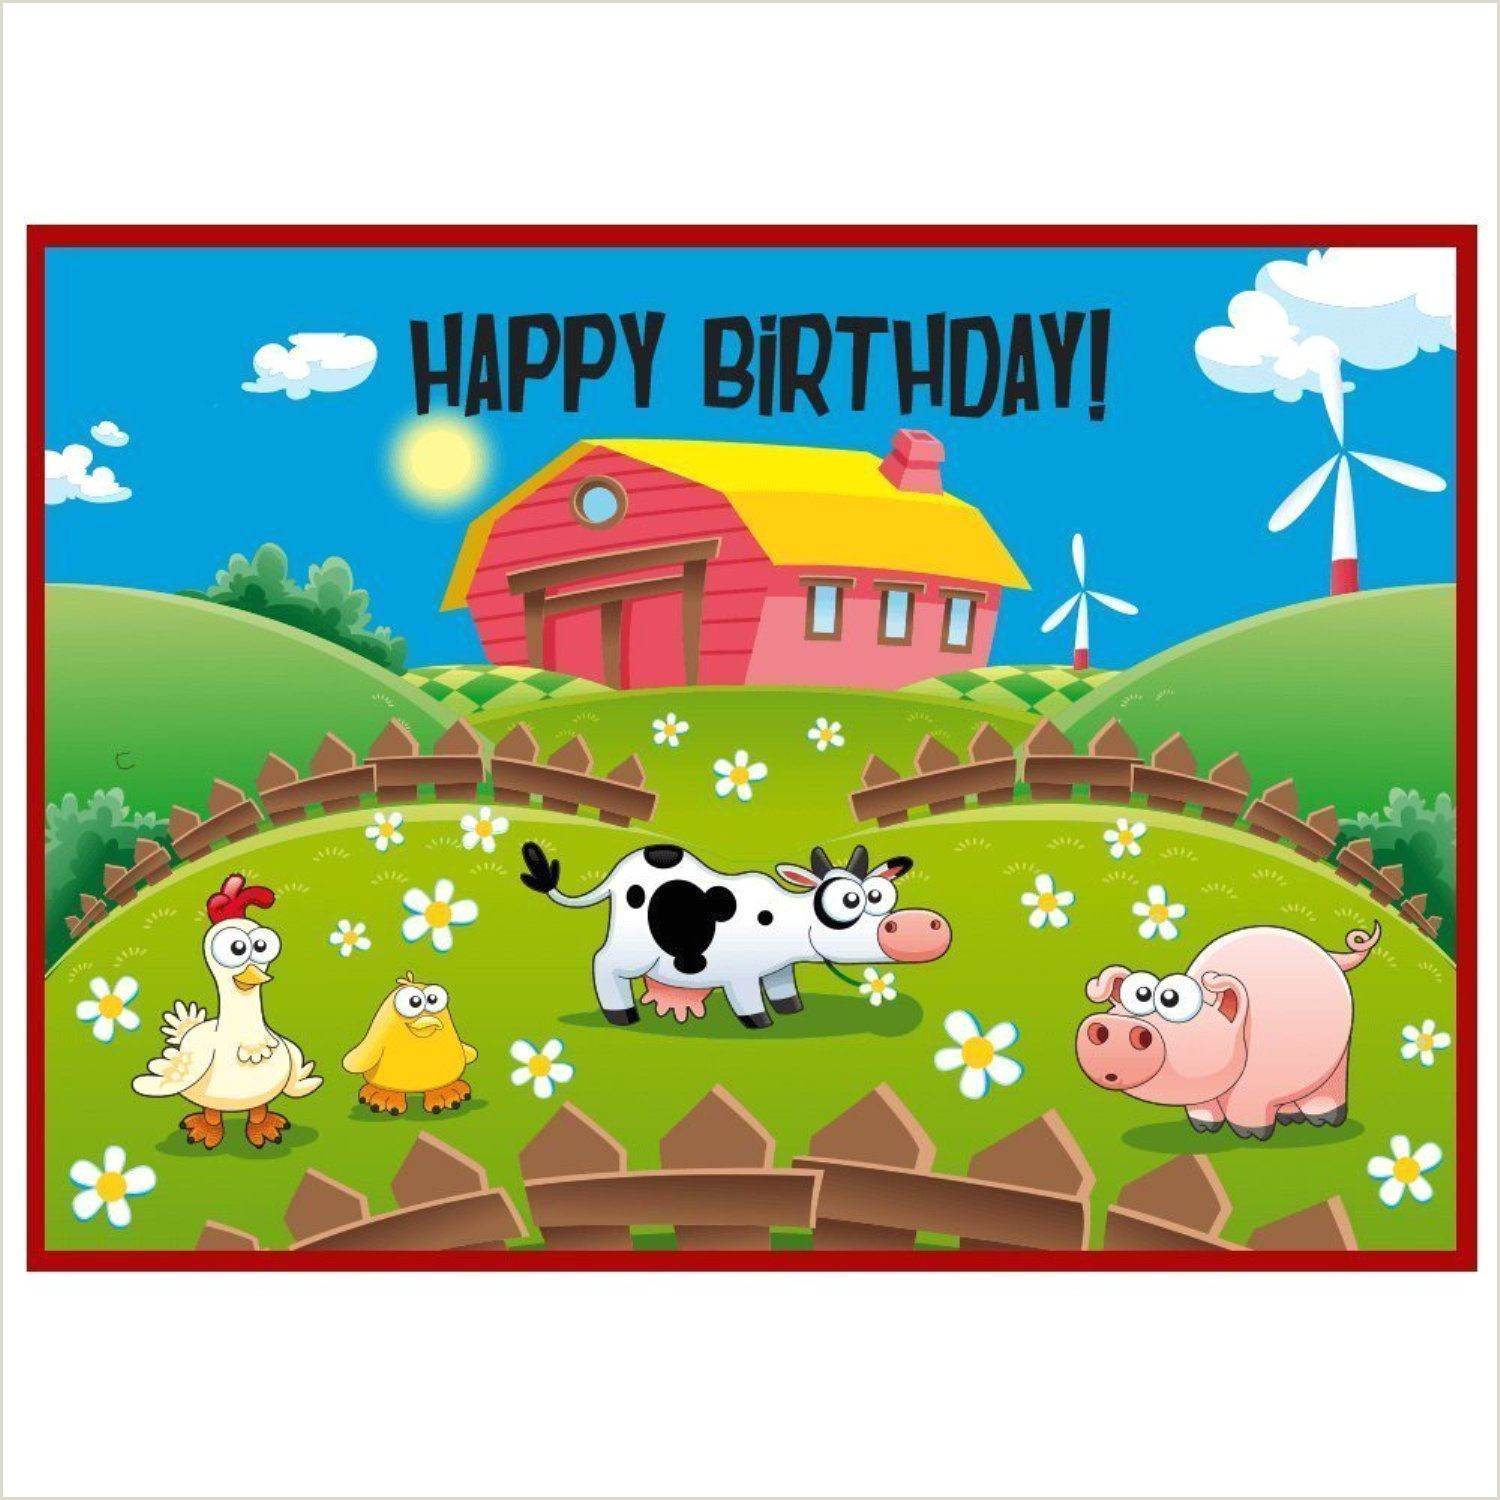 My Banner Is Clear Theme My Party Theme Based Birthday Banner For Cake Table